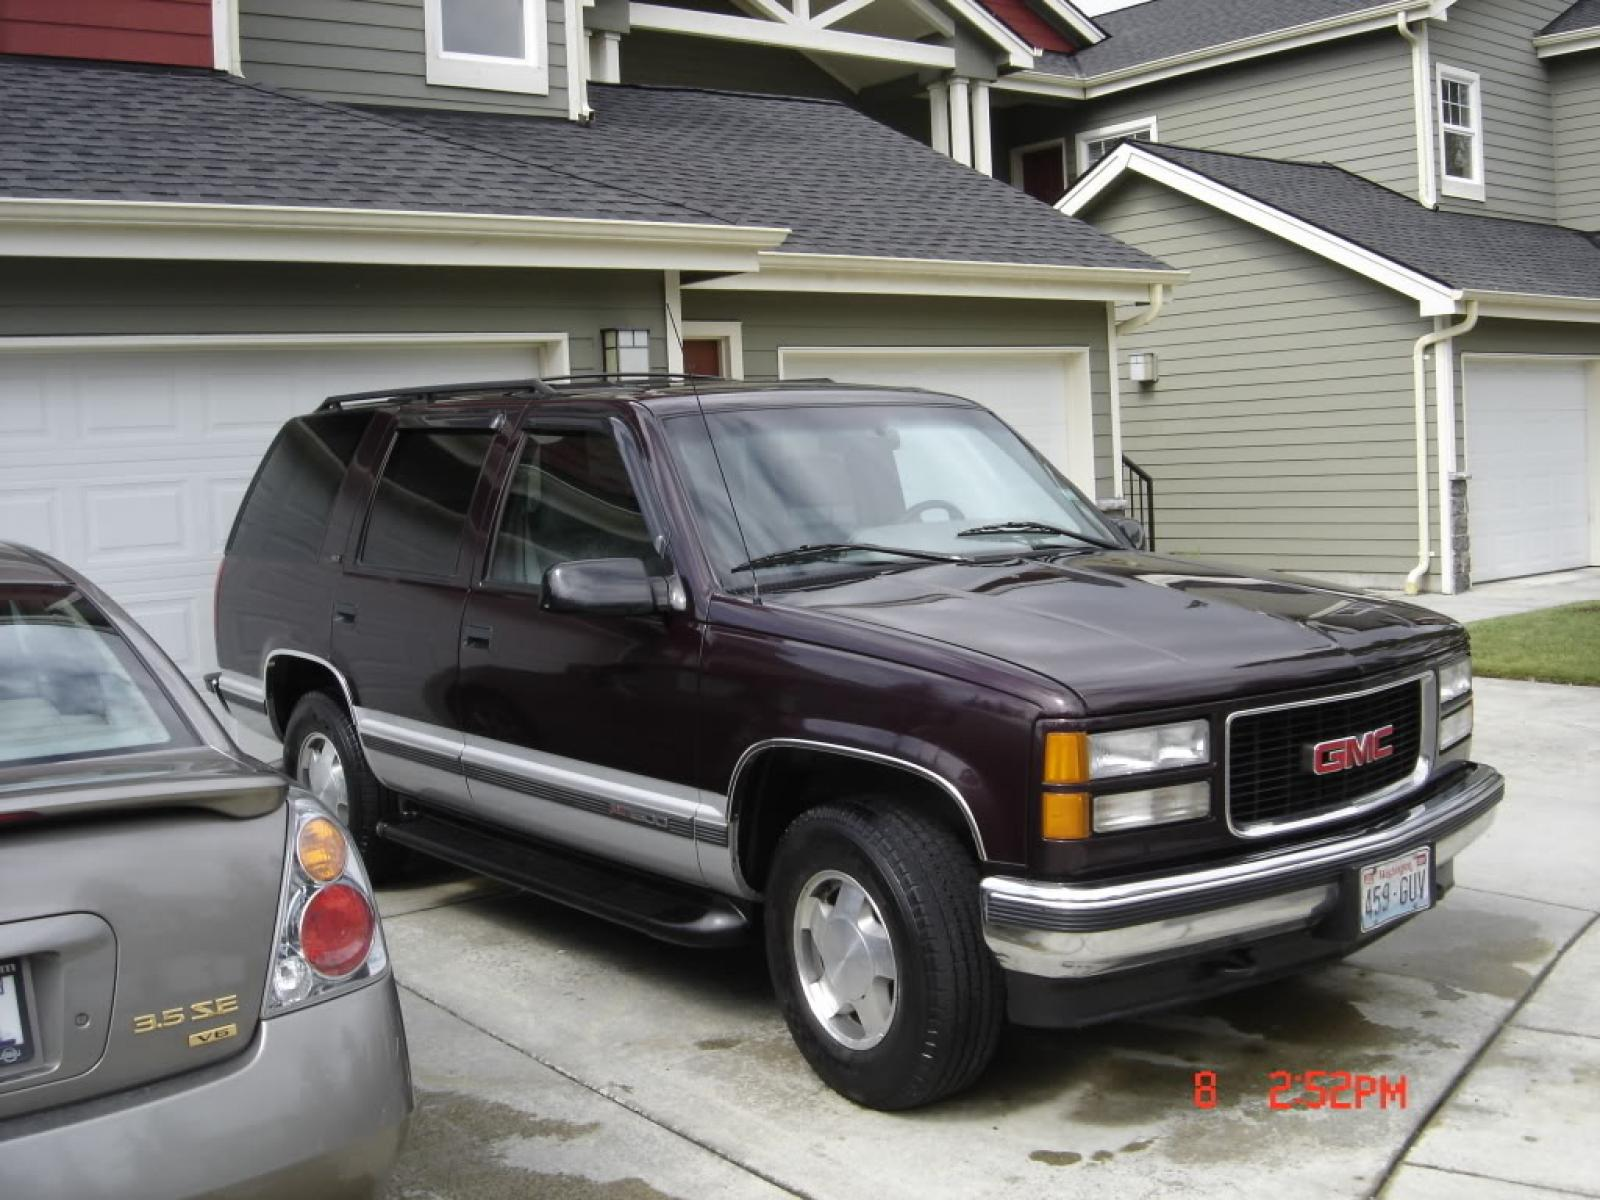 1996 gmc yukon information and photos zombiedrive. Black Bedroom Furniture Sets. Home Design Ideas